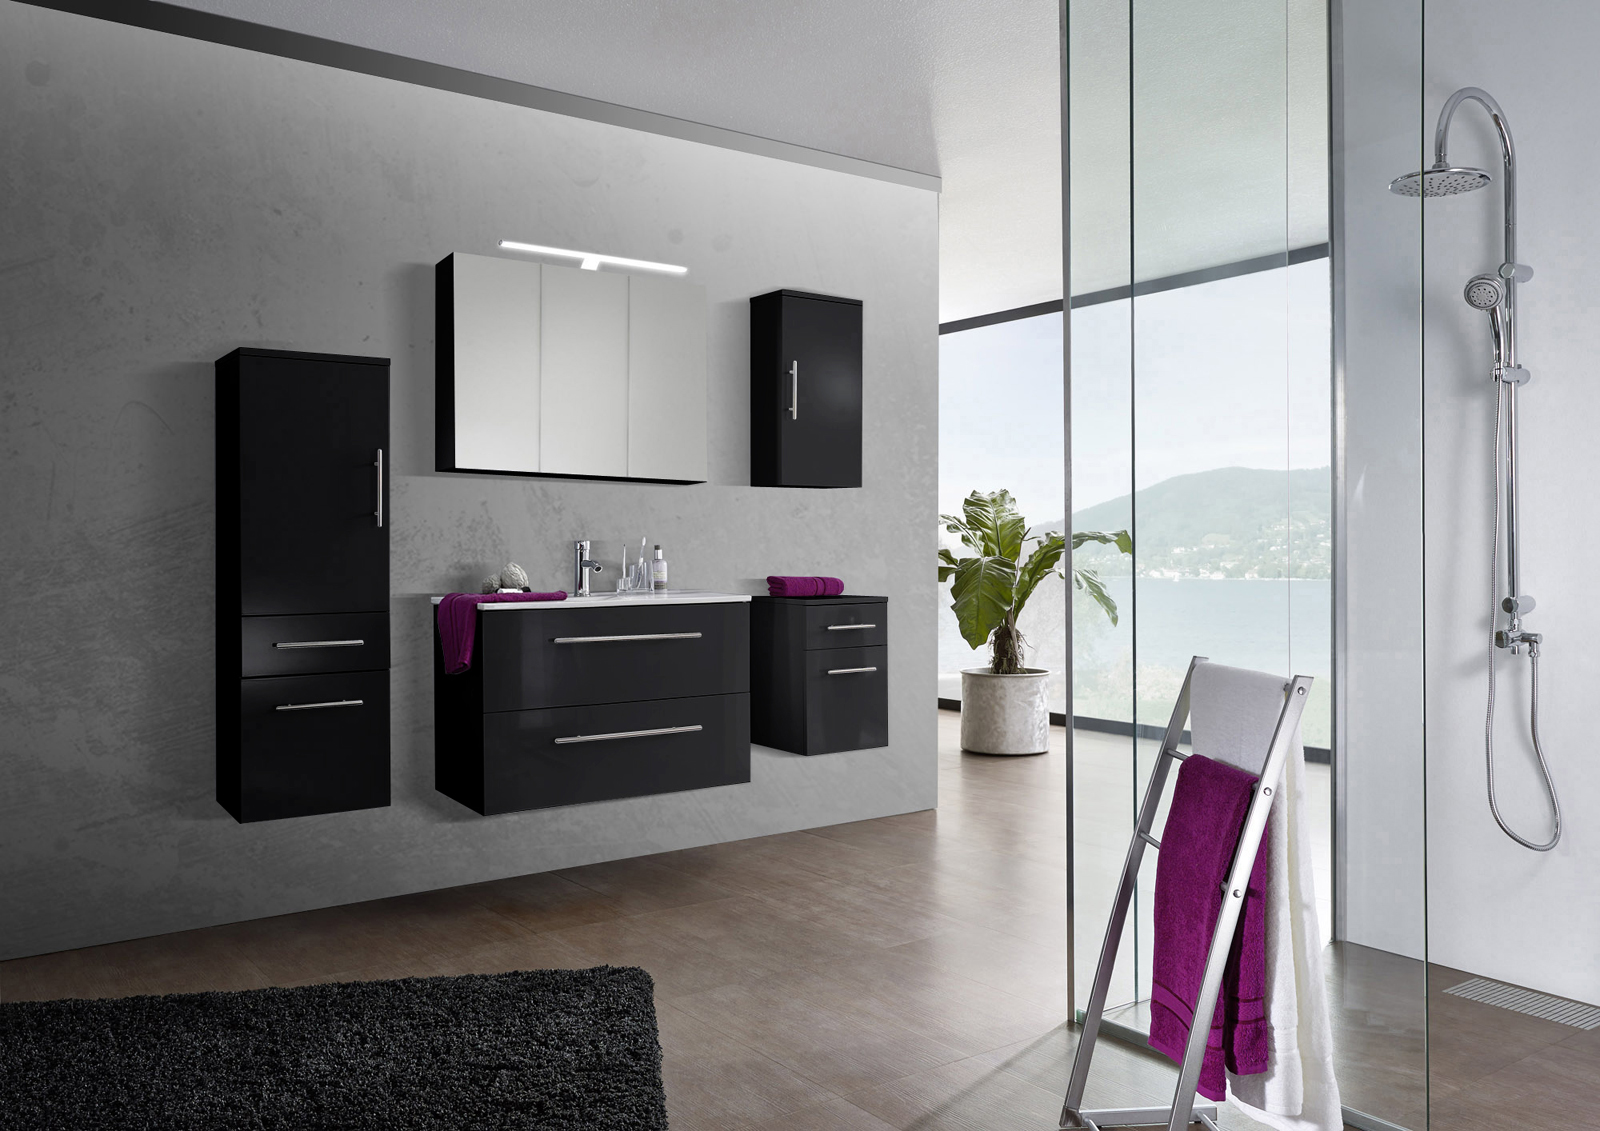 sam 5tlg badezimmer set spiegelschrank schwarz 90 cm verena auf lager. Black Bedroom Furniture Sets. Home Design Ideas